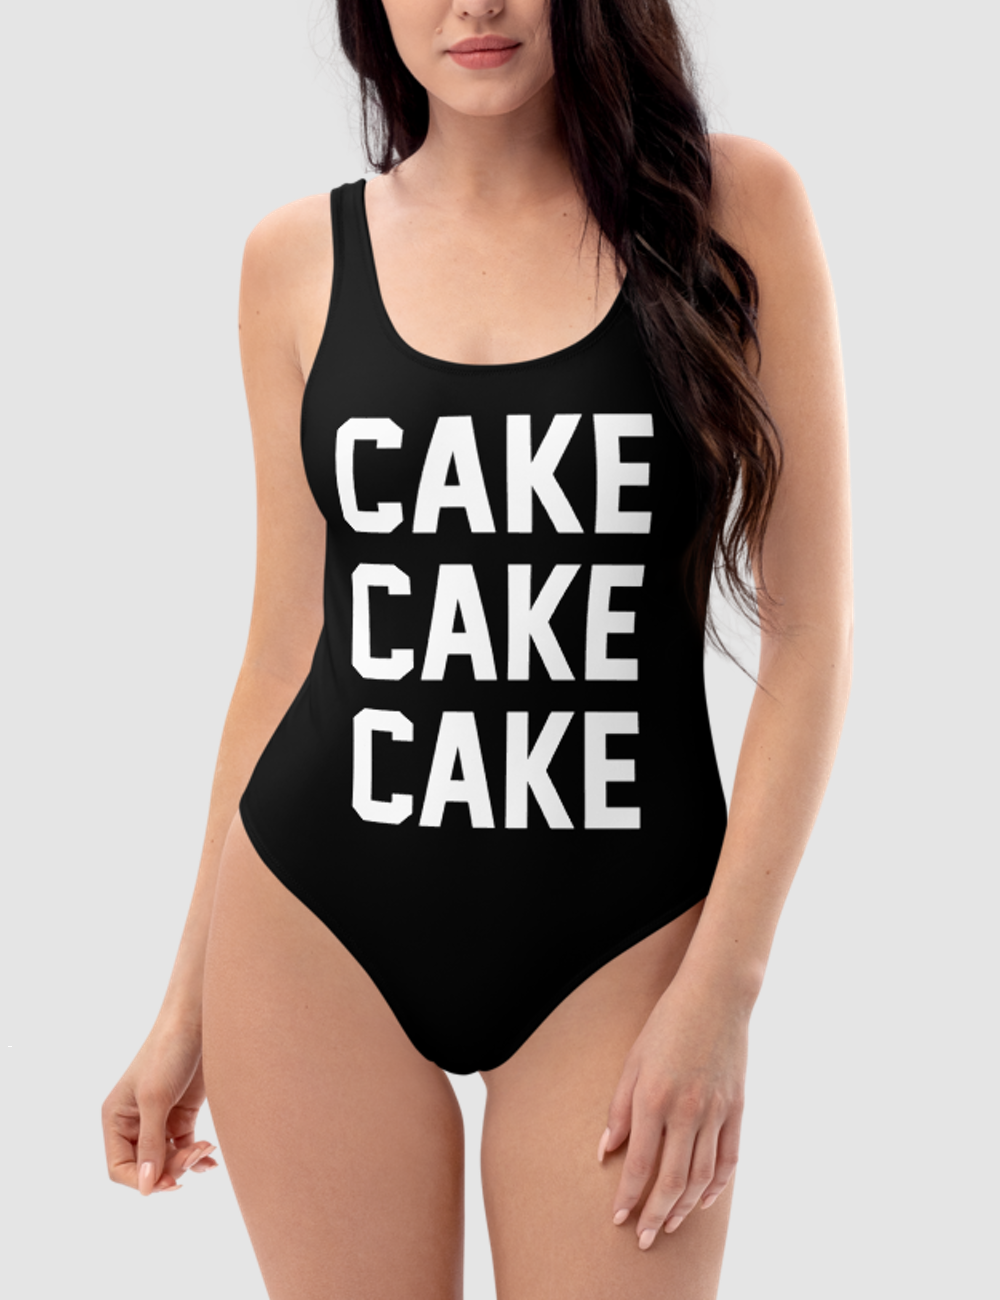 Cake Cake Cake | Women's One-Piece Swimsuit